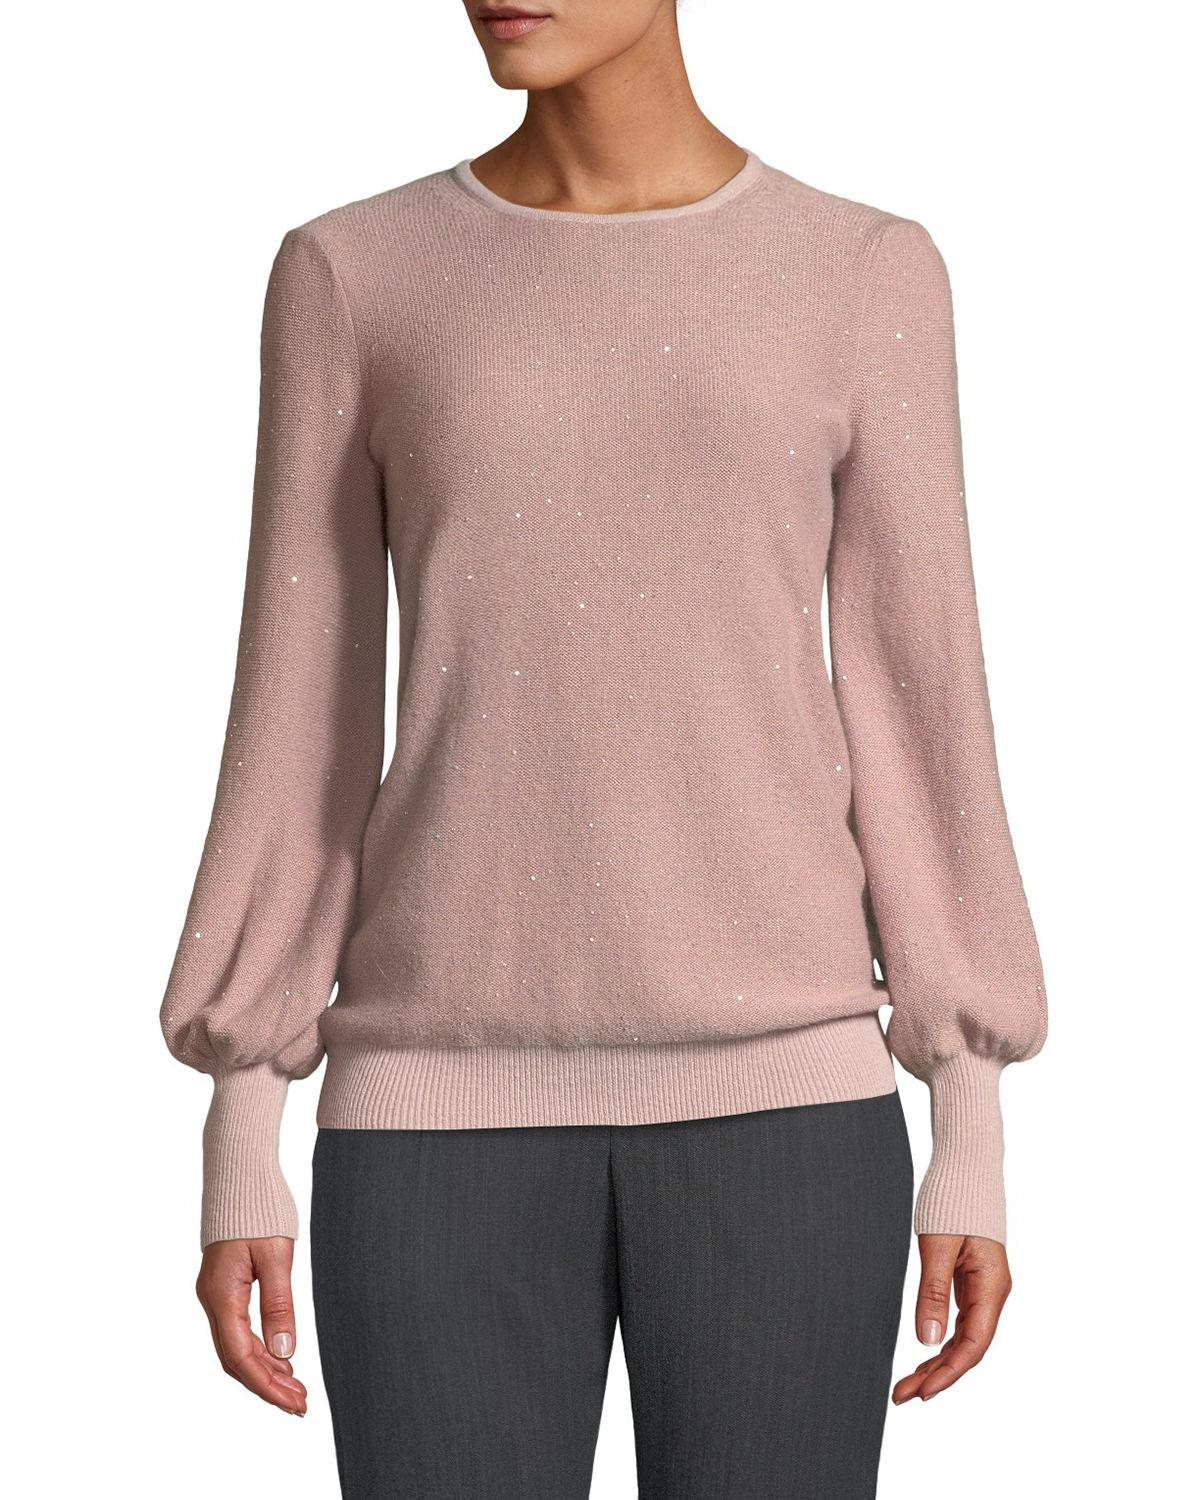 3ecbddcd280d Lyst - Neiman Marcus Cashmere Sequined Balloon-sleeve Sweater in Pink